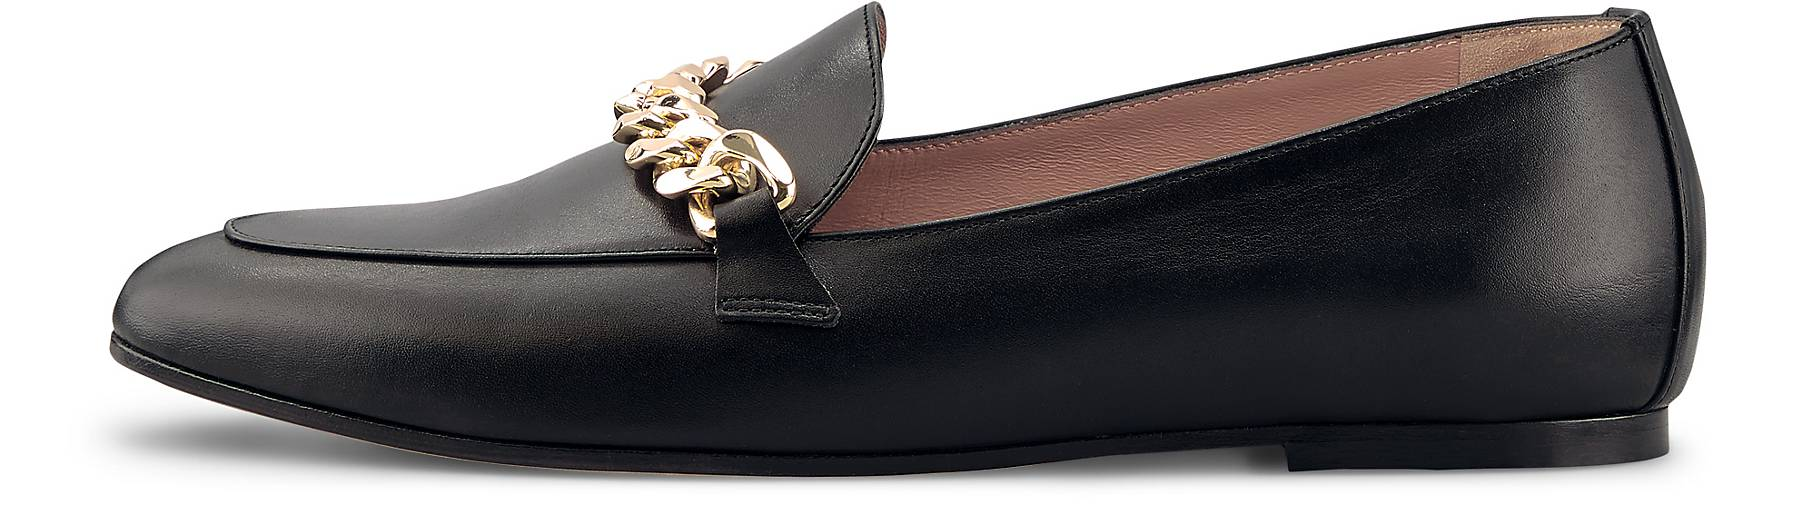 BOSS Loafer KAIA